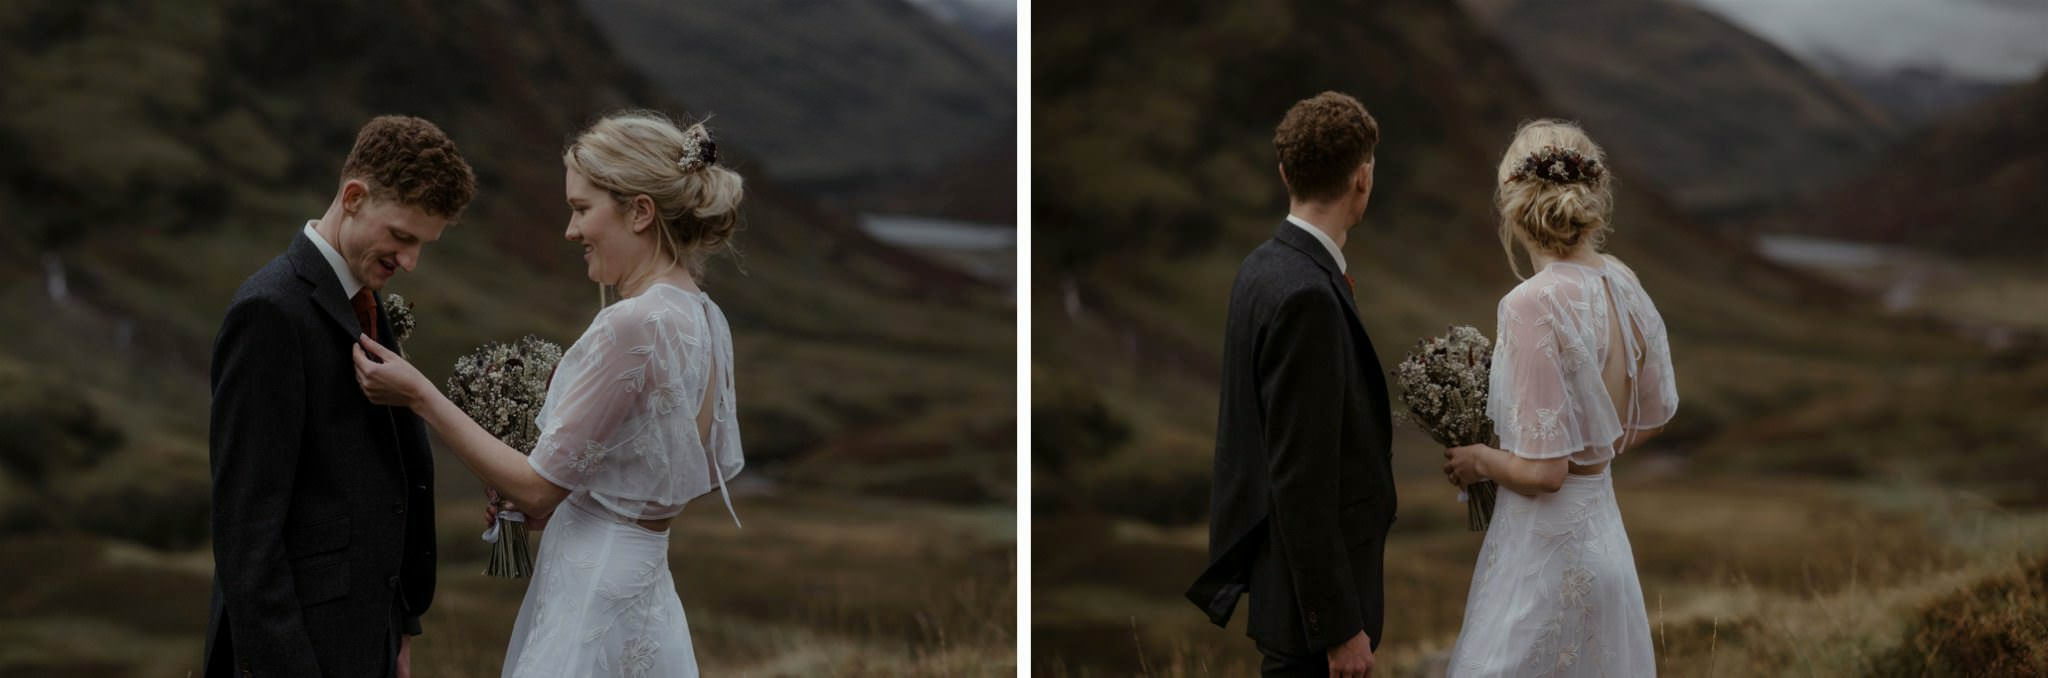 Bride fixes groom's outfit during their wedding for two in Scotland